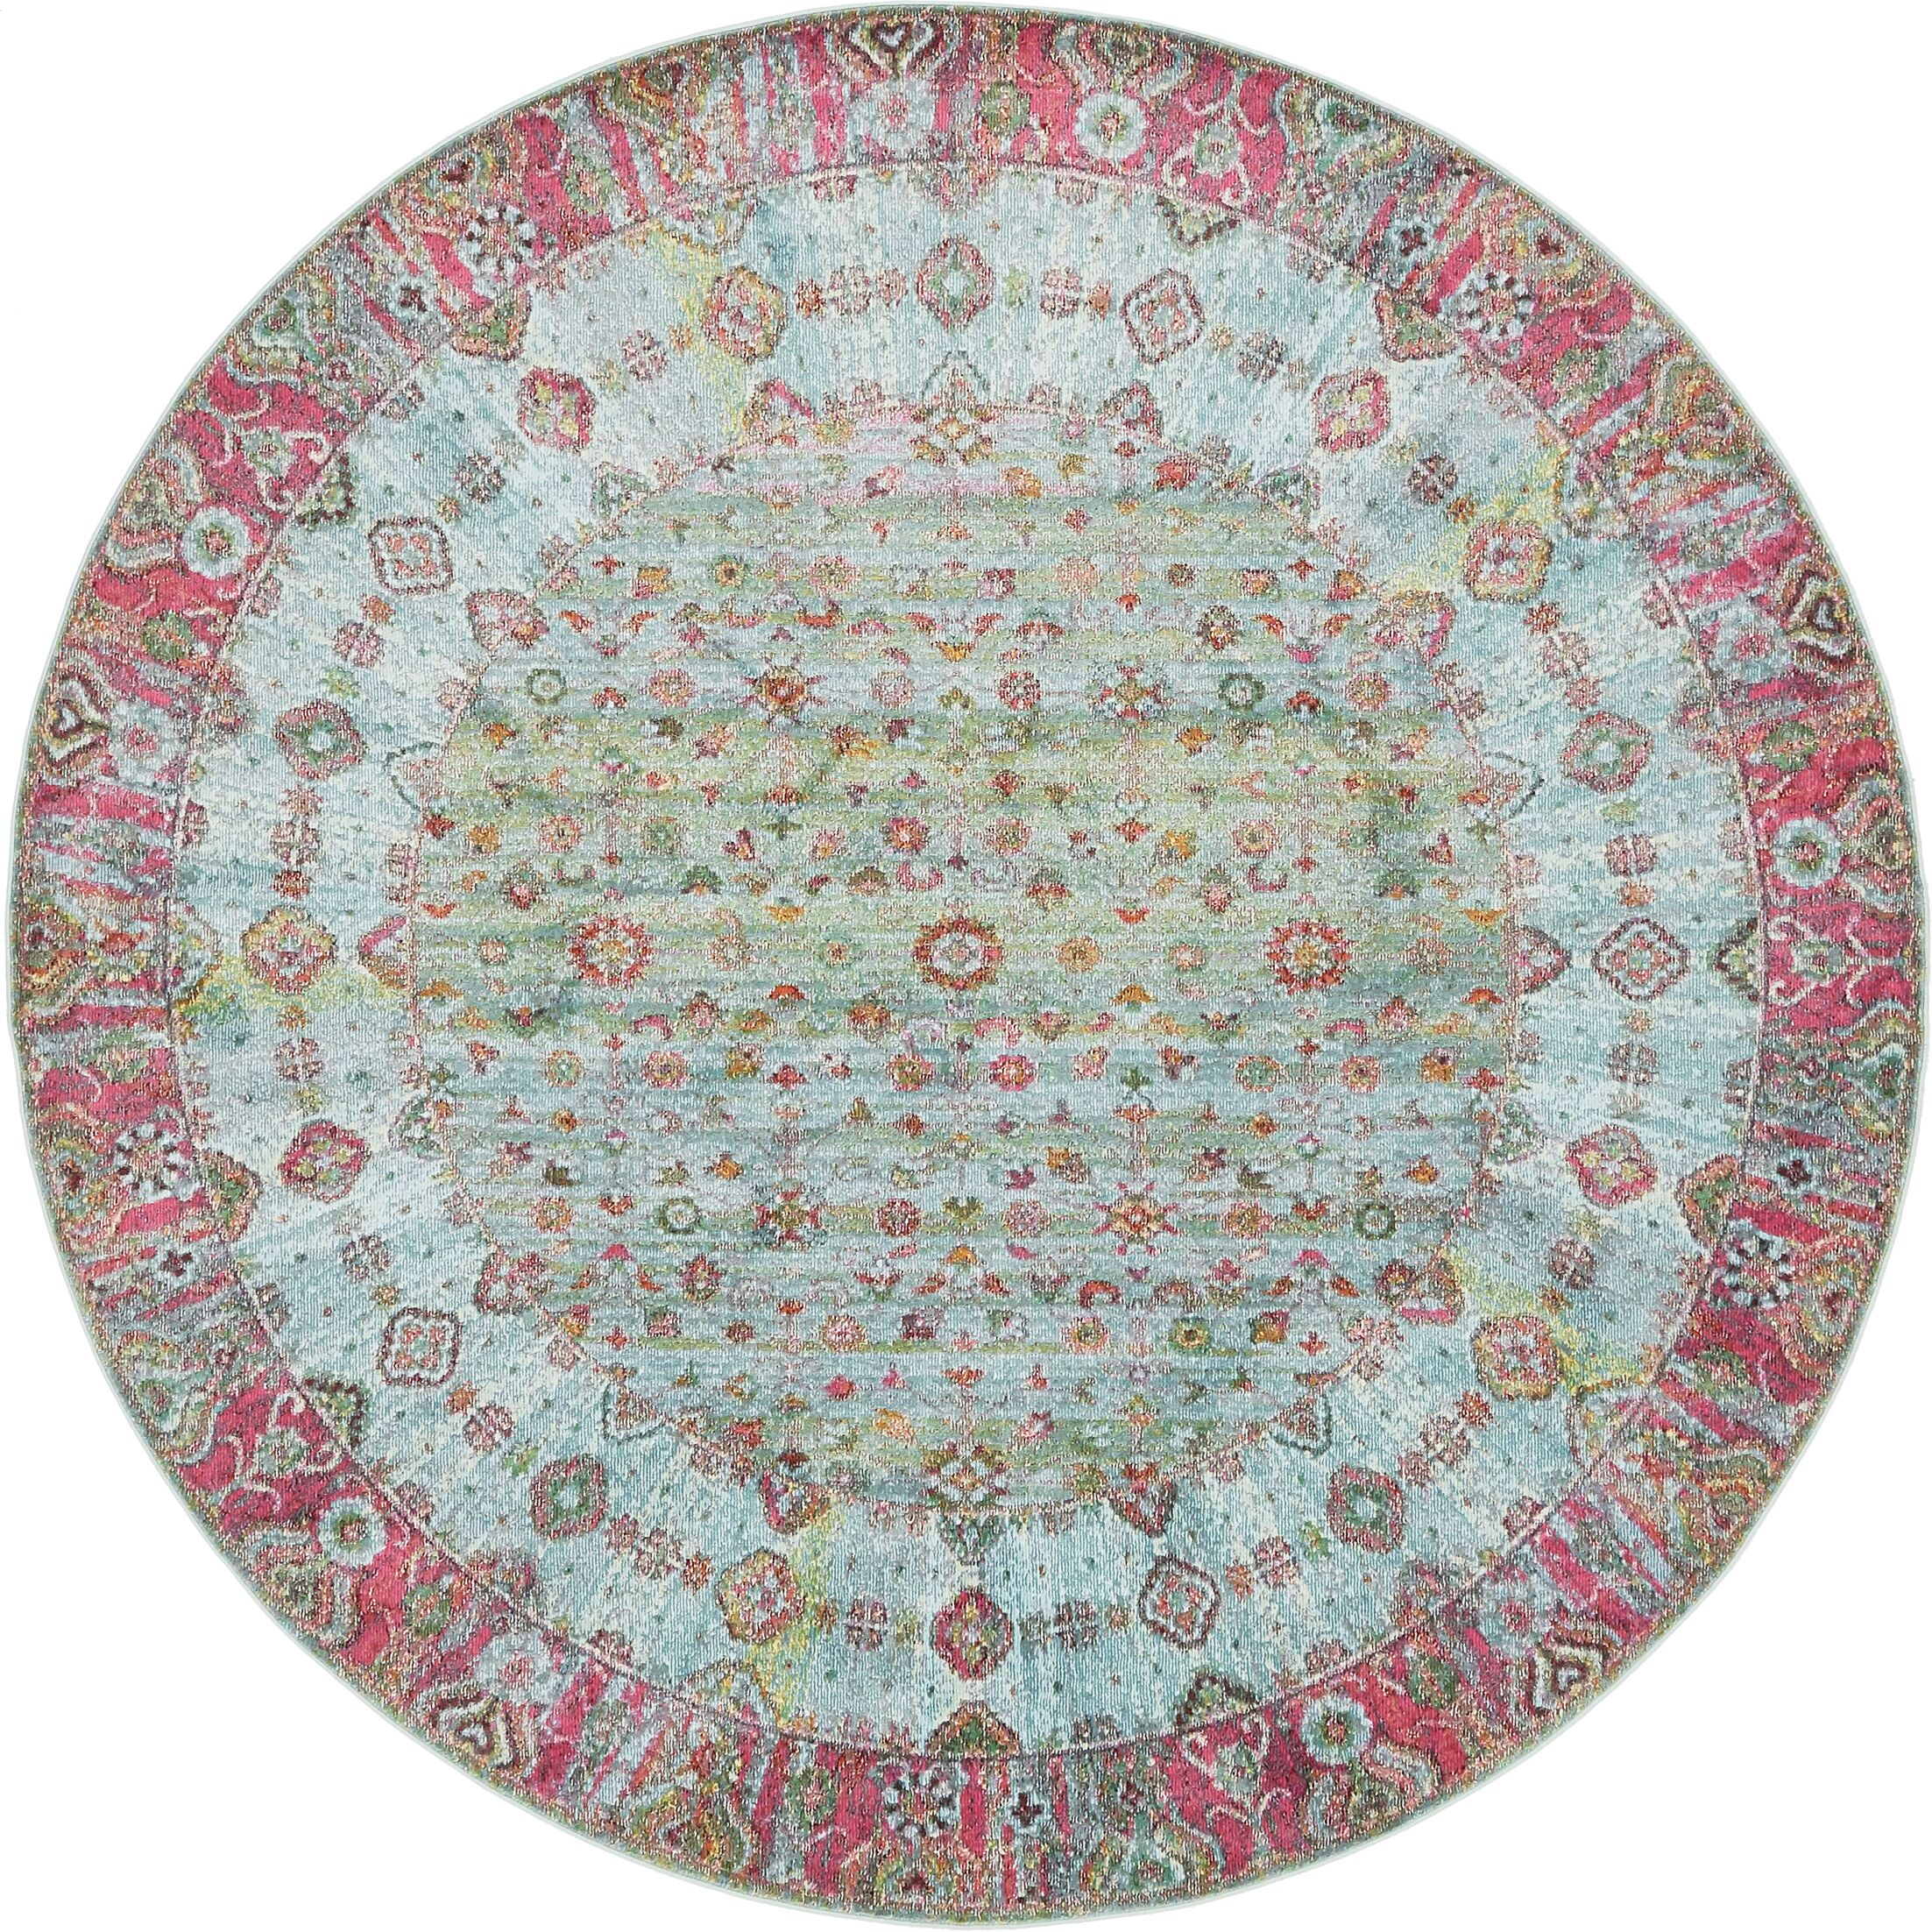 Lonerock European Pink/Teal Area Rug Rug Size: Round 8'4